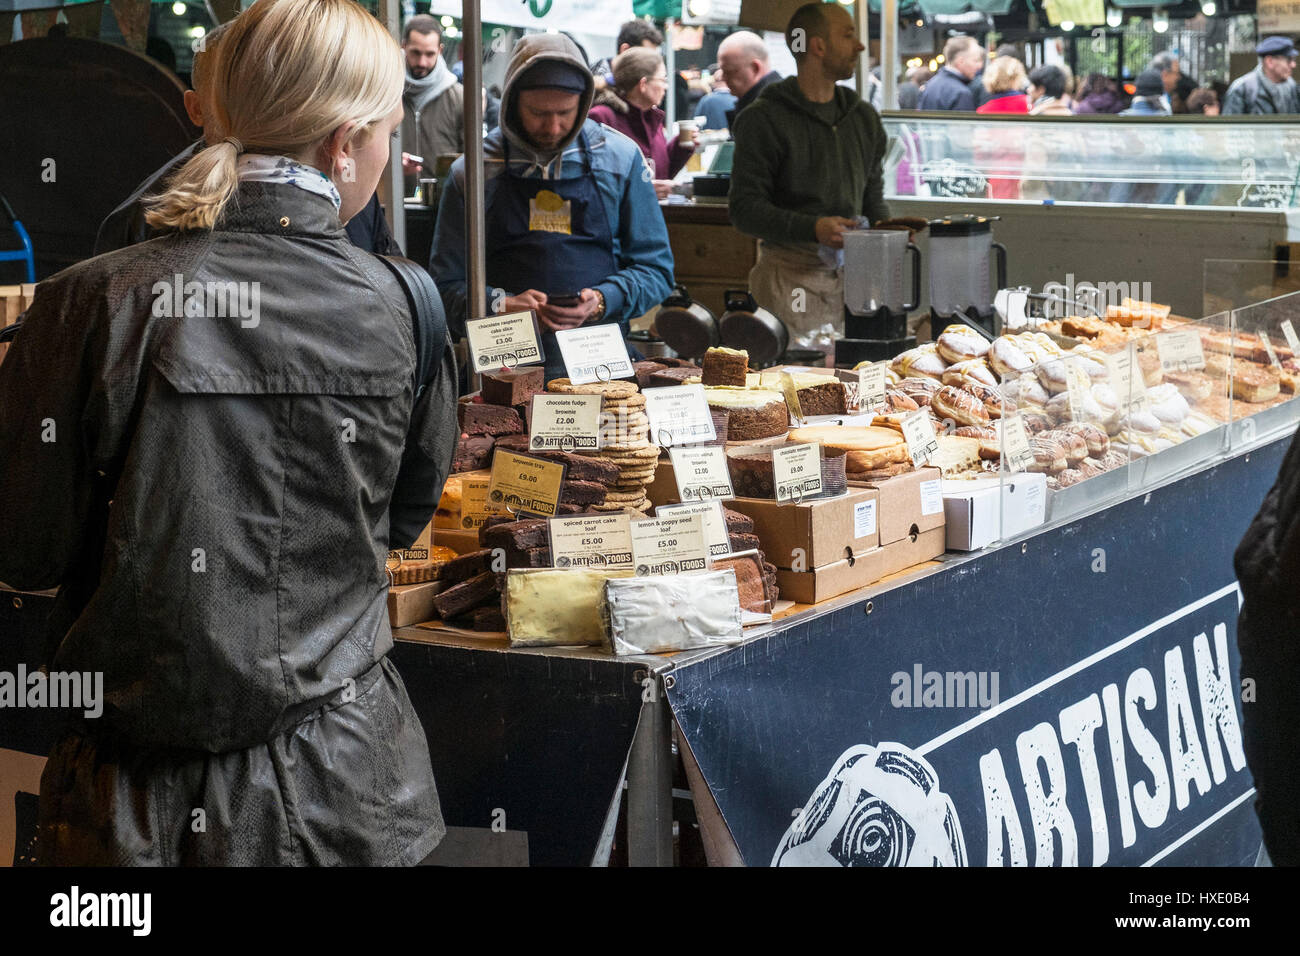 Borough Market Display Stall Artisan Cakes Food Shoppers; Shopping - Stock Image